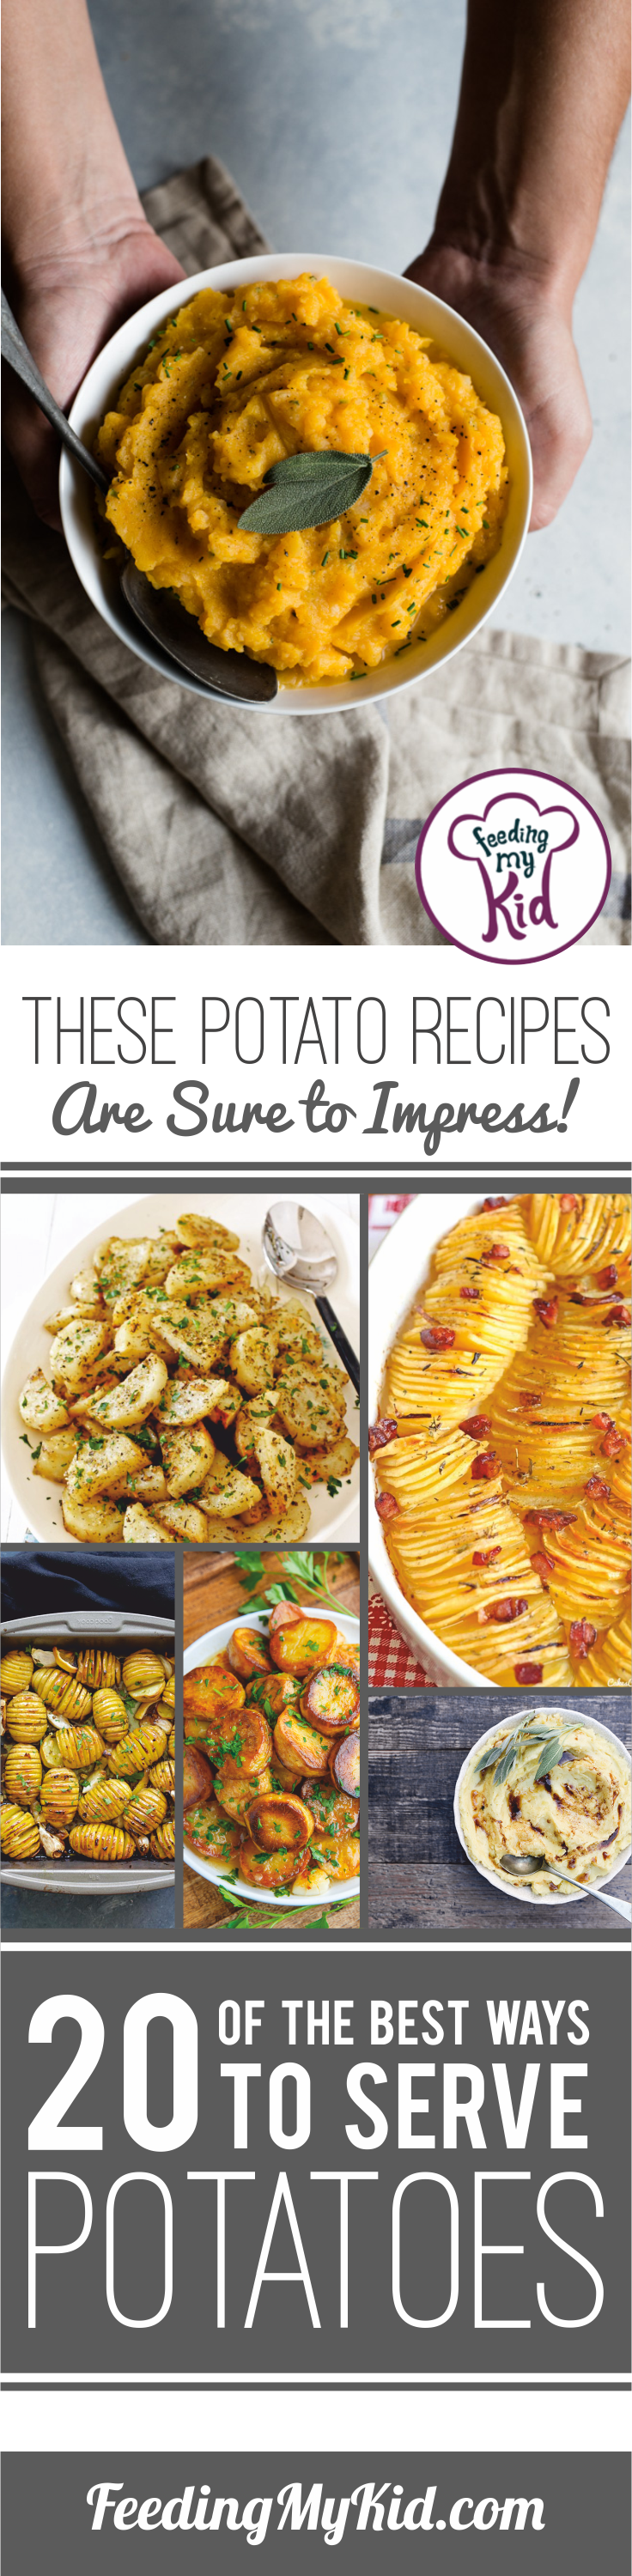 Our ultimate list of the 20 best ways to serve potato dishes! These are perfect for dinner parties and potlucks. Your guests will be impressed.